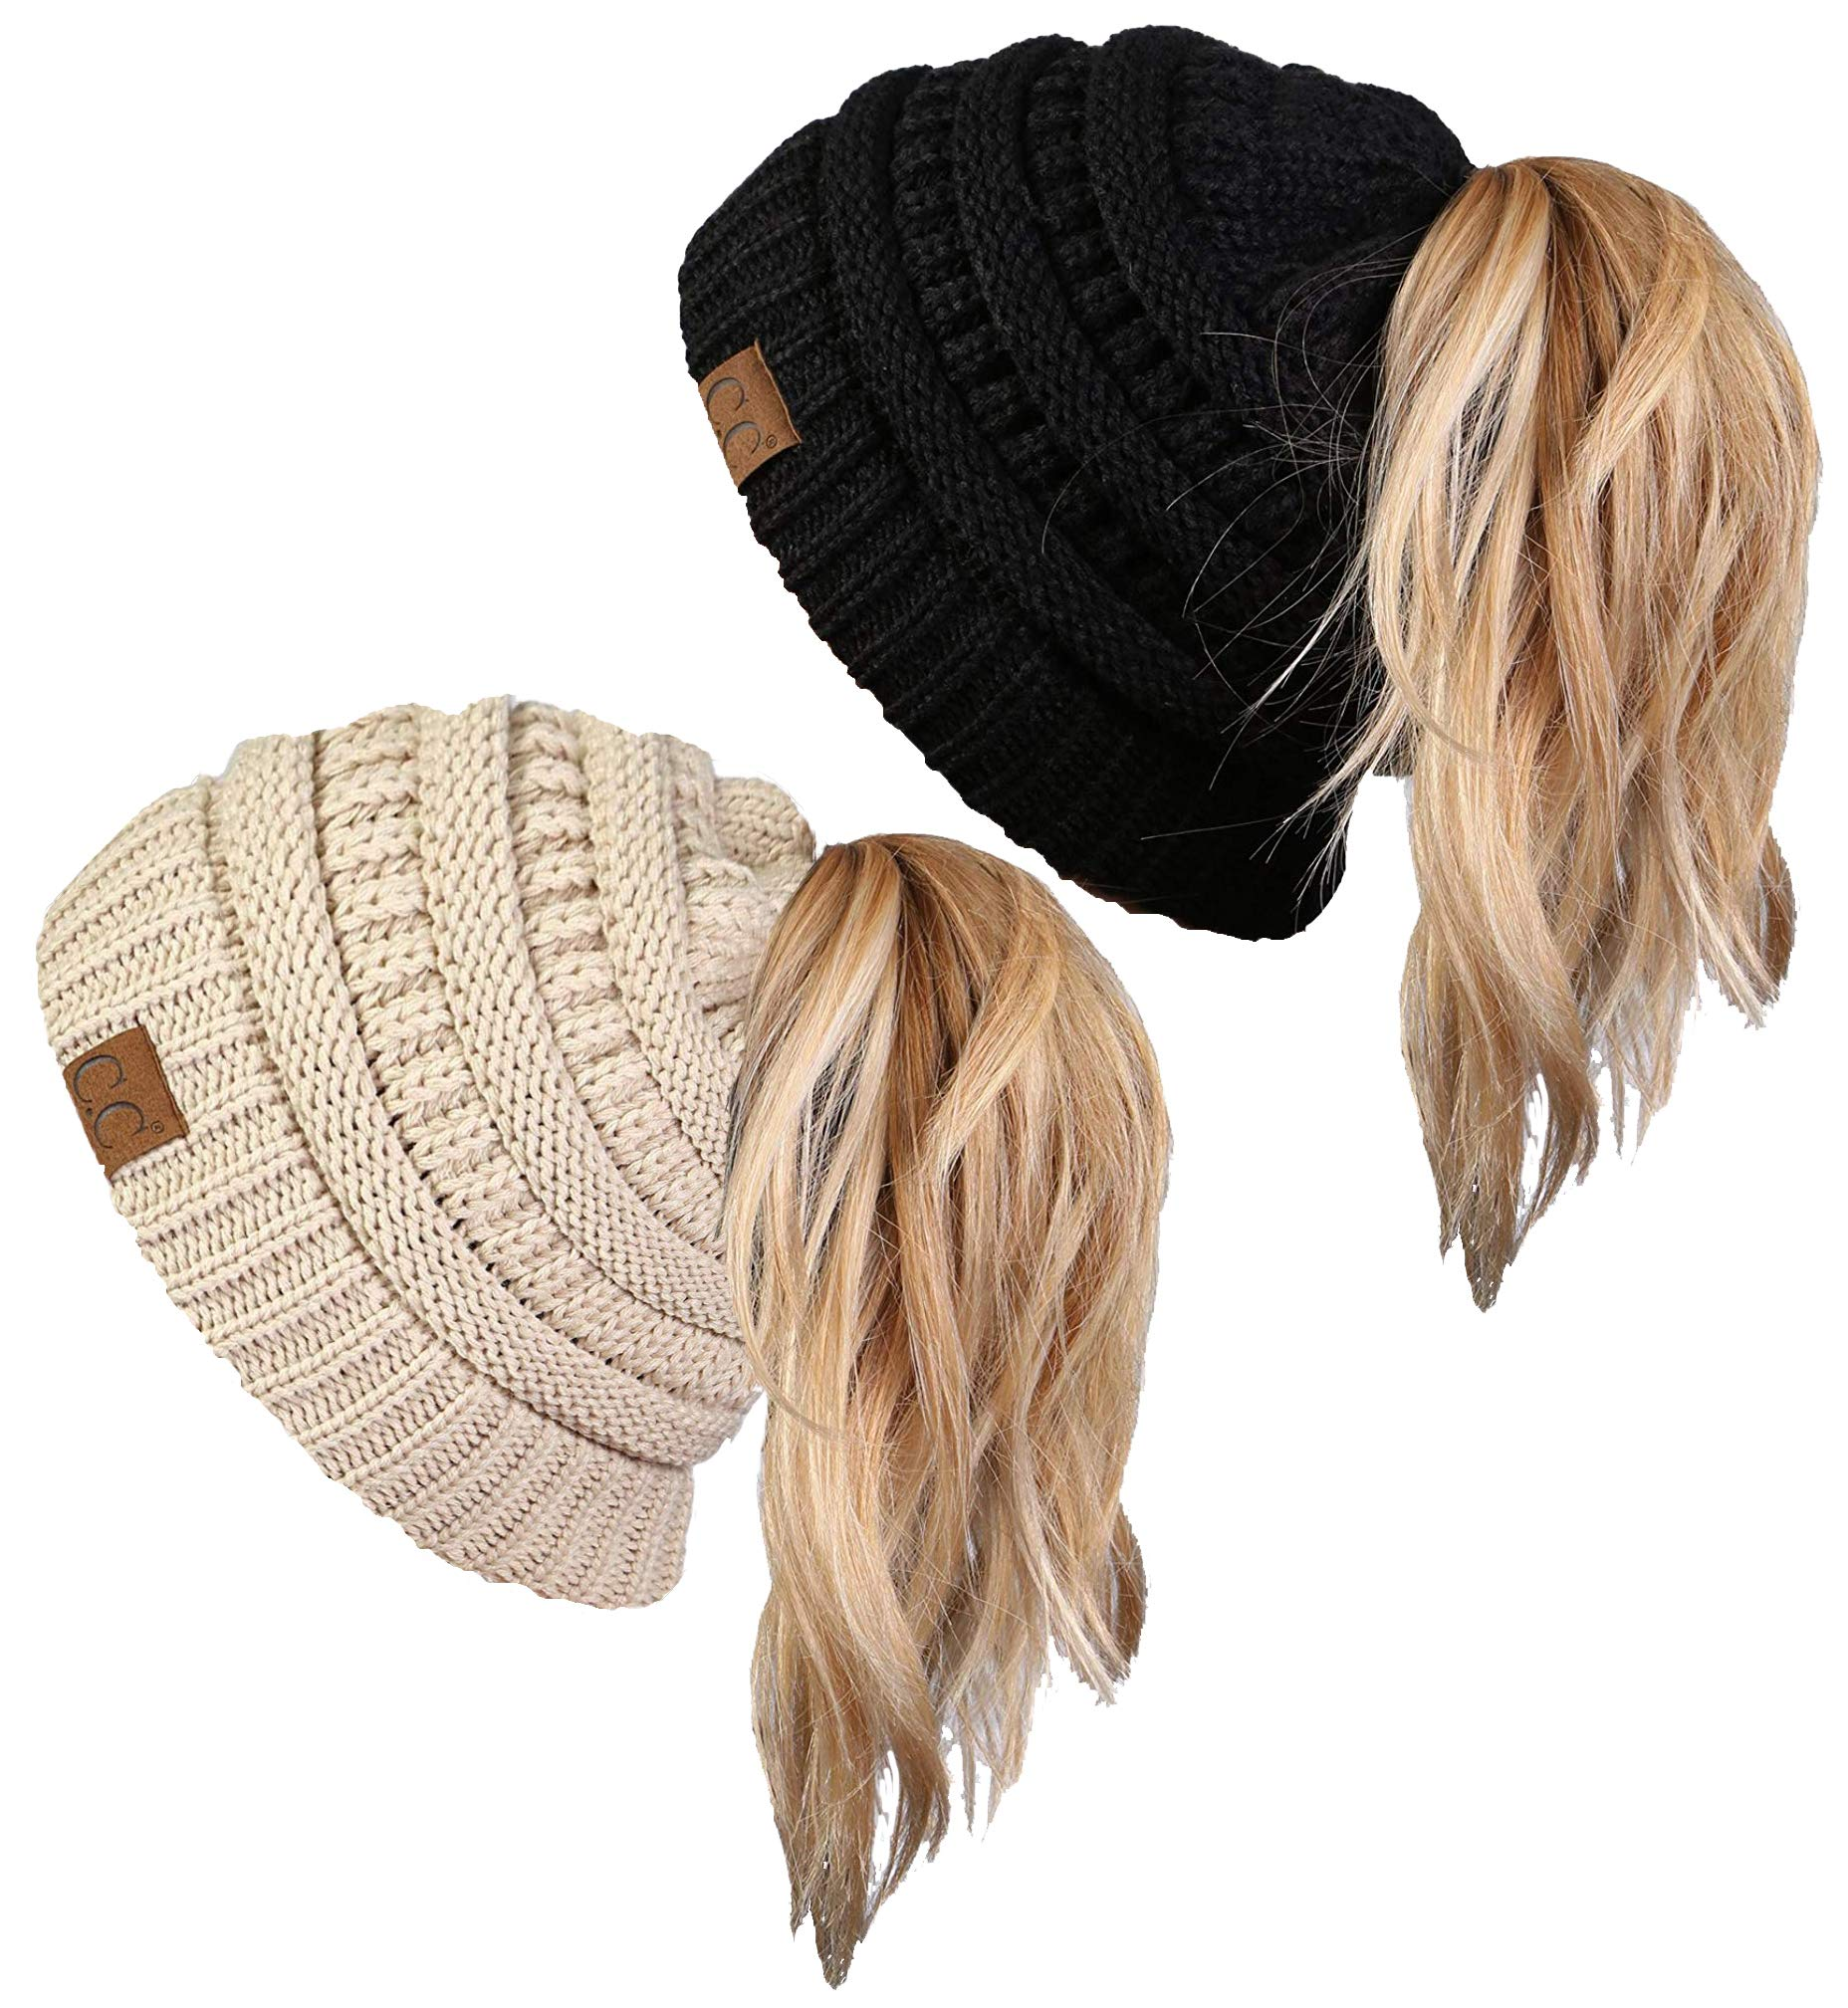 BT-6020a-2-0660 Solid Messy Bun Beanie Tail Bundle - 1 Black, 1 Beige (2 Pack) by Funky Junque